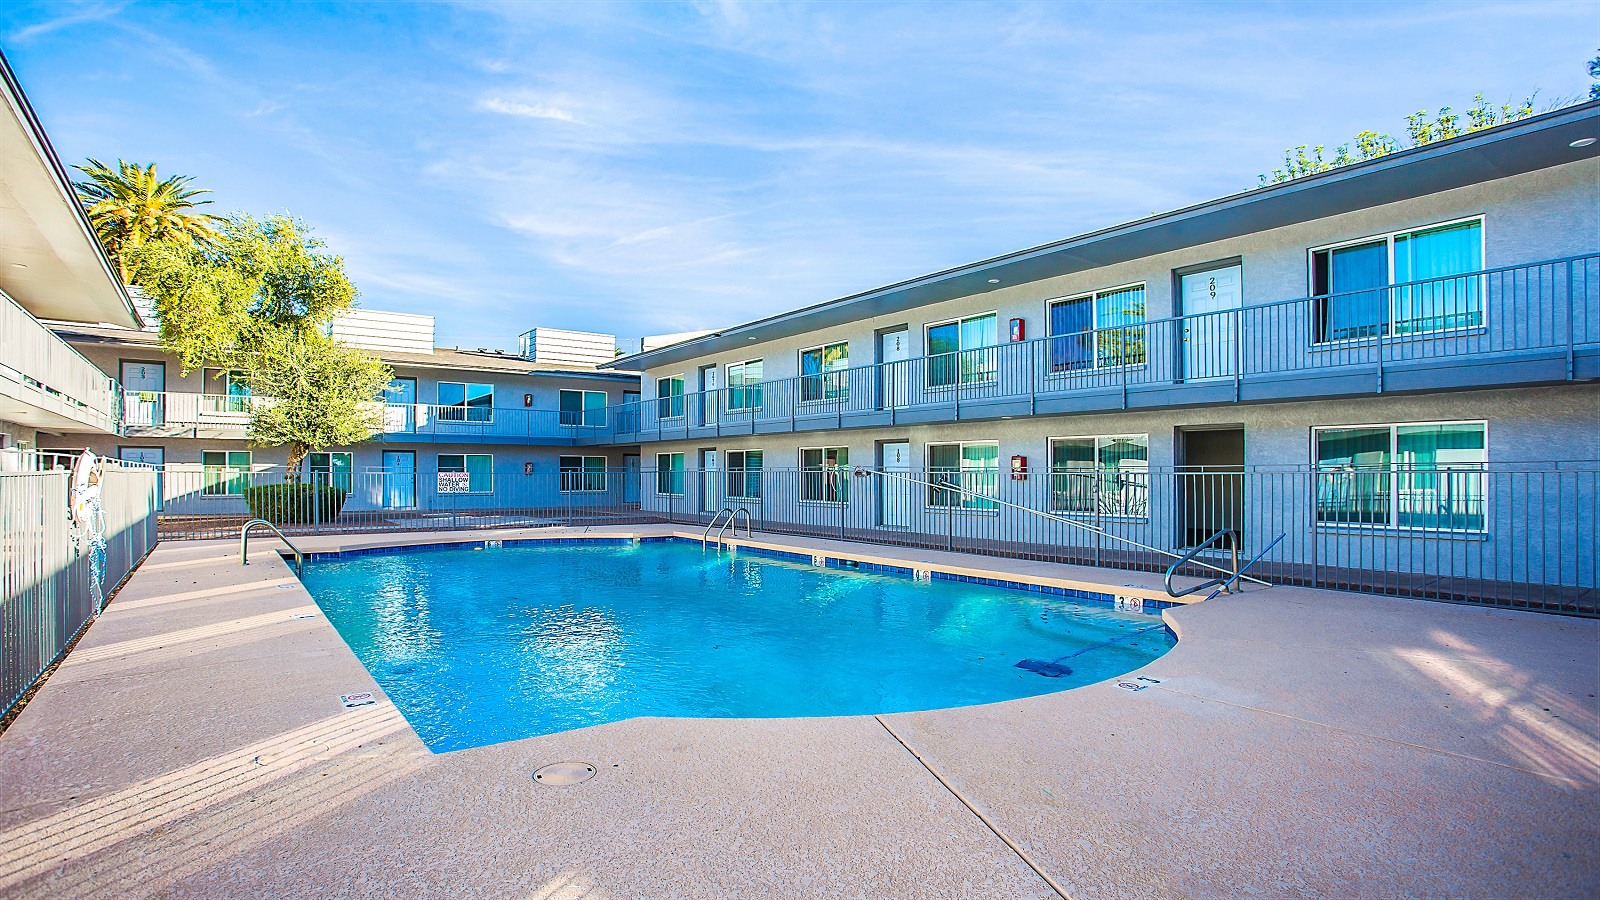 Park Mesa Apartments | 1547 East Broadway Road, Mesa, AZ 85204 | 42 Units | Built in 1984 | $3,850,000 | $91,667 Per Unit | $117.02 Per SF